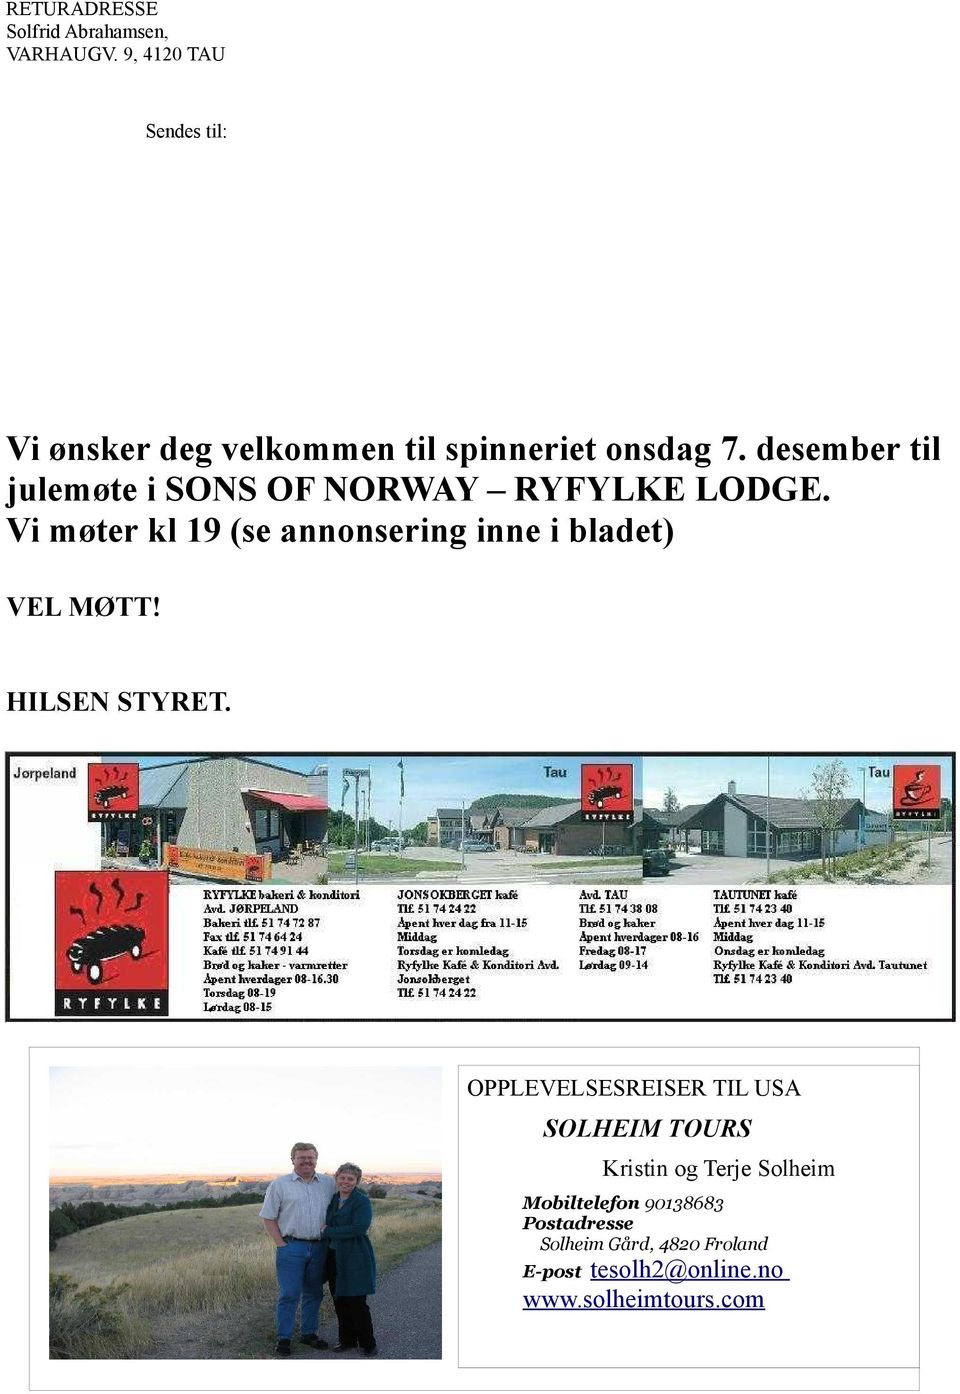 desember til julemøte i SONS OF NORWAY RYFYLKE LODGE.